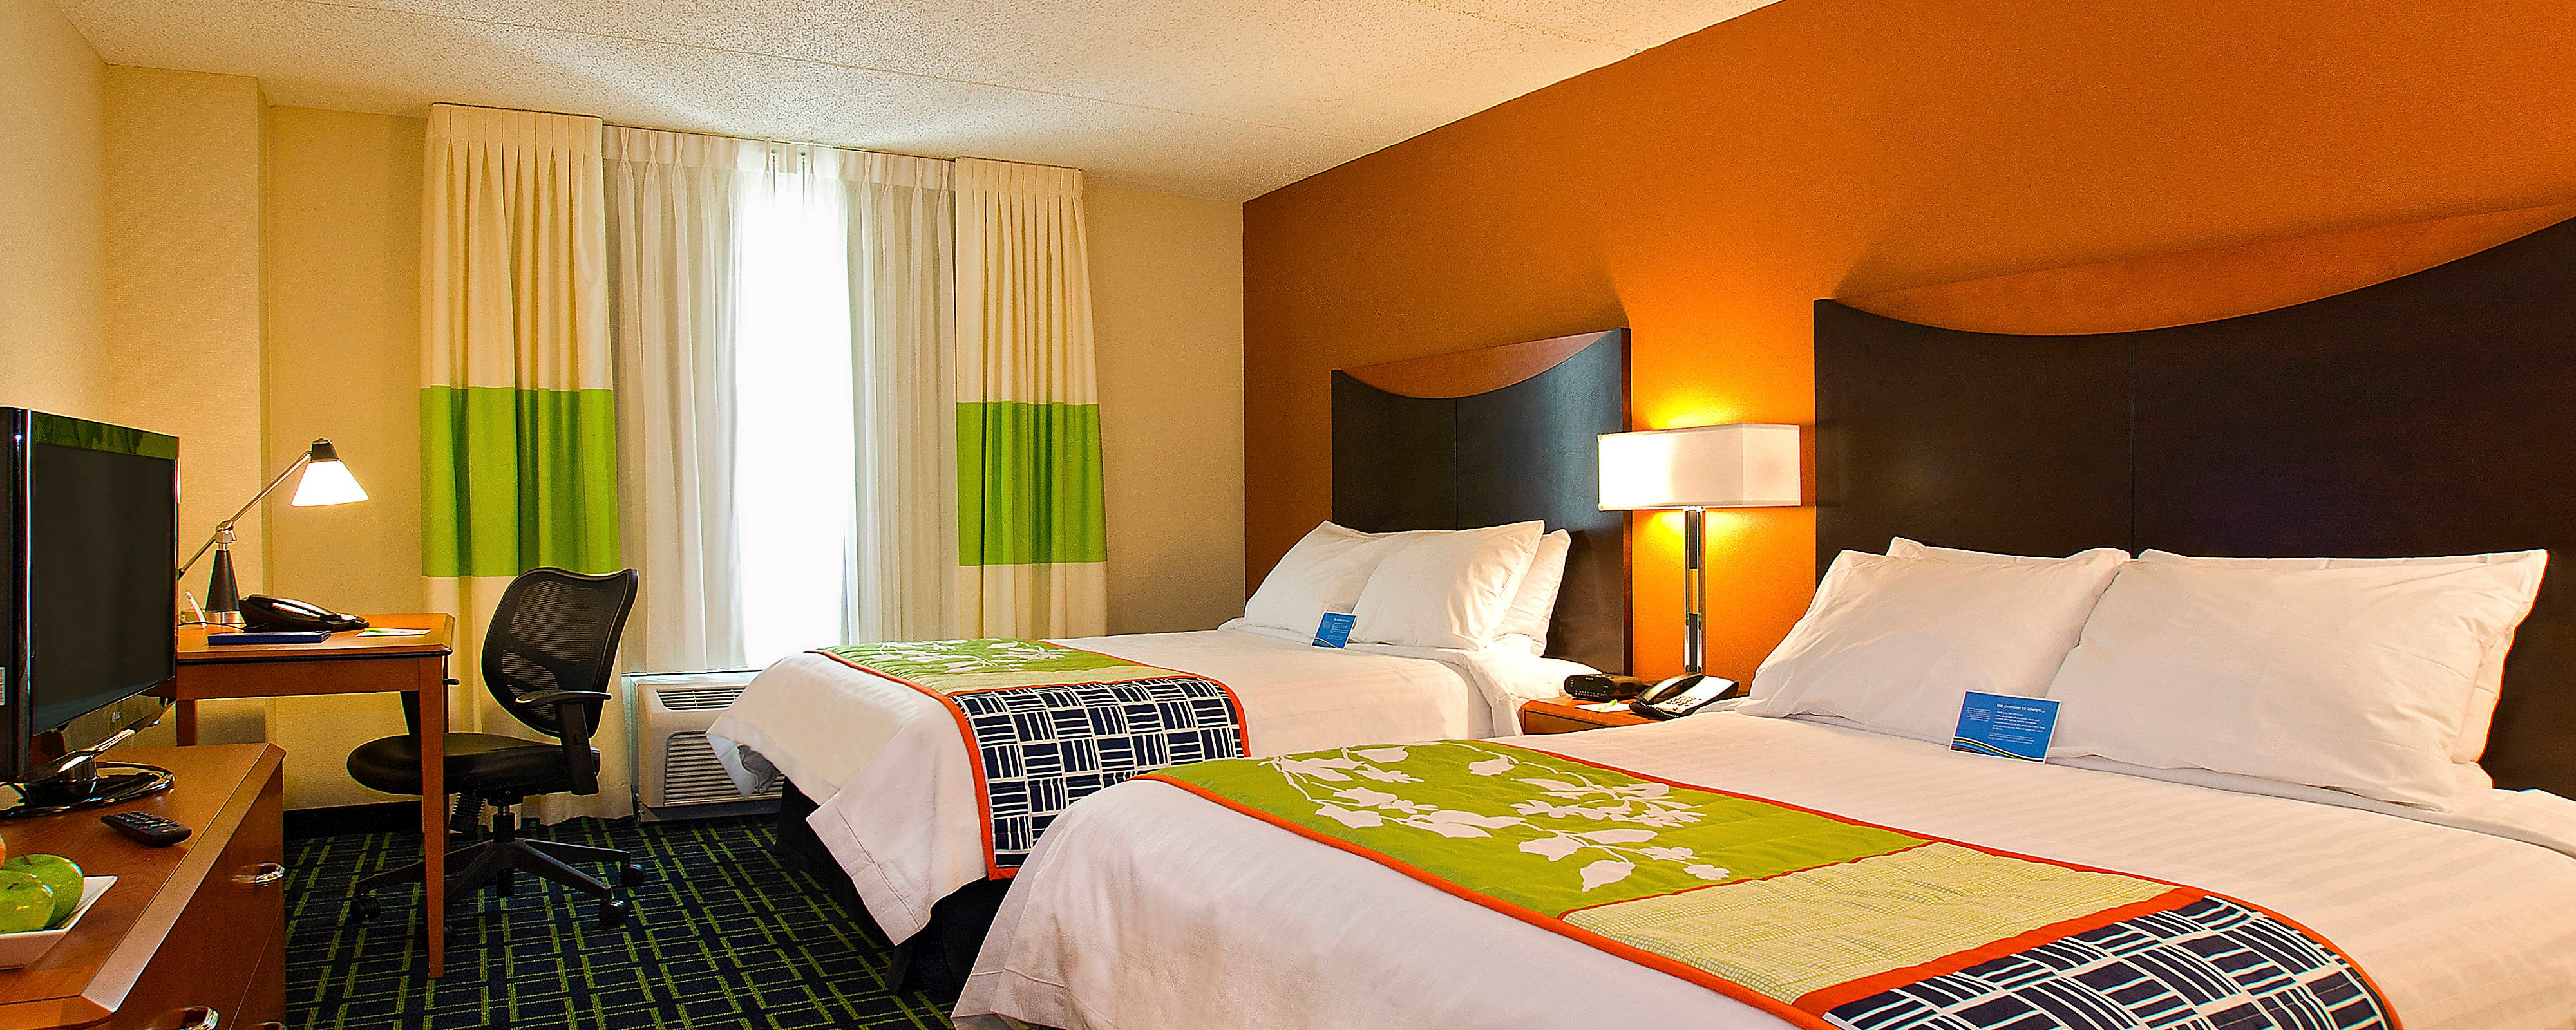 Fairfield Marriott Alamo Plaza Rooms